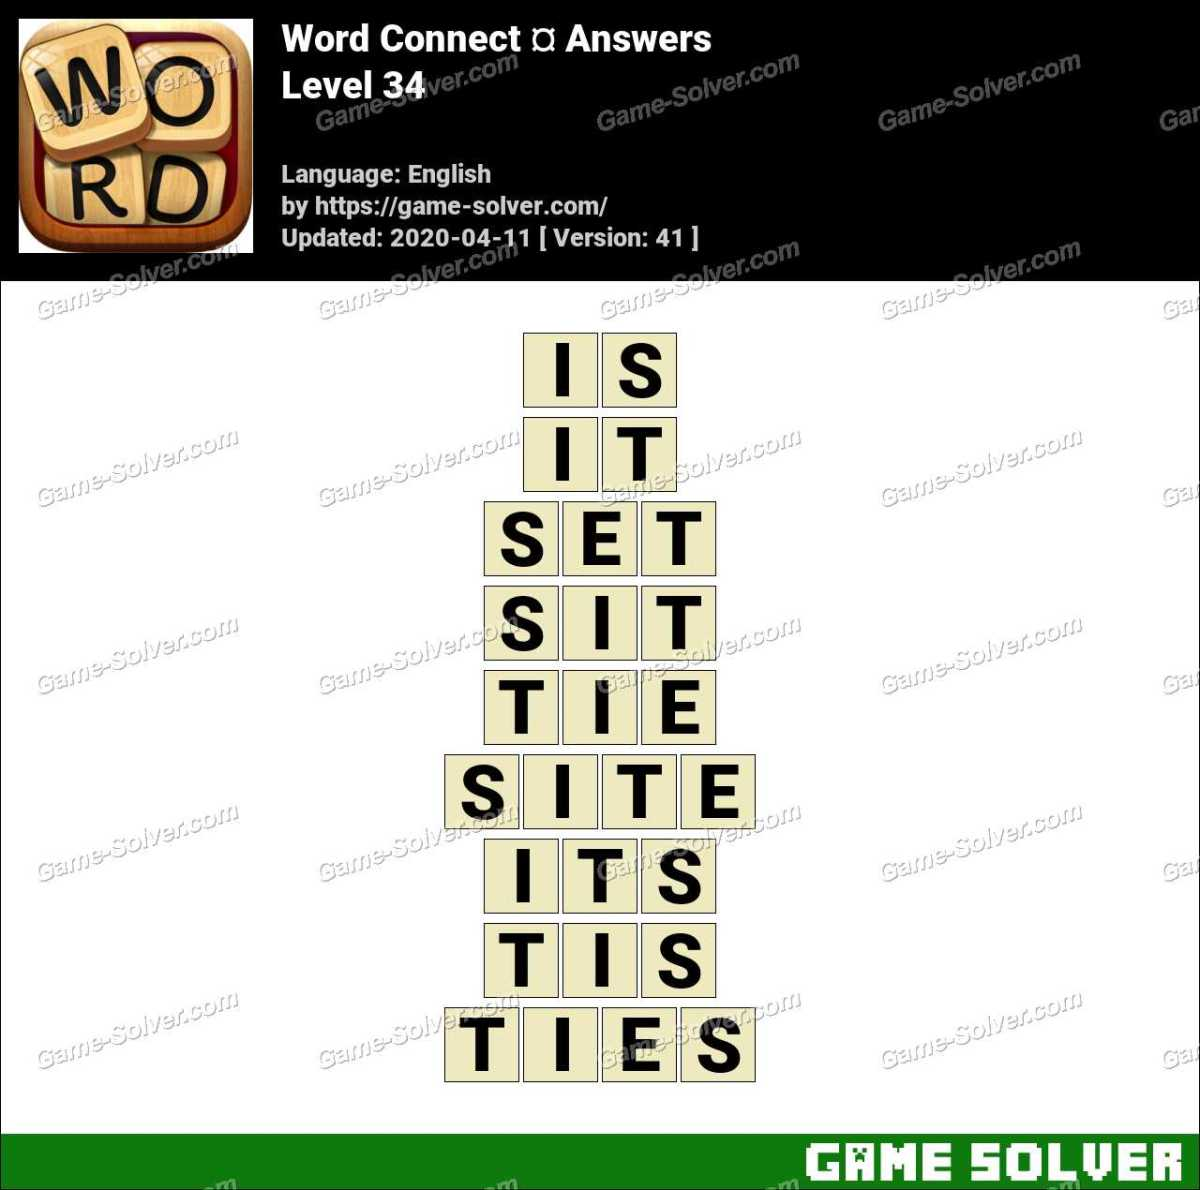 Word Connect Level 34 Answers